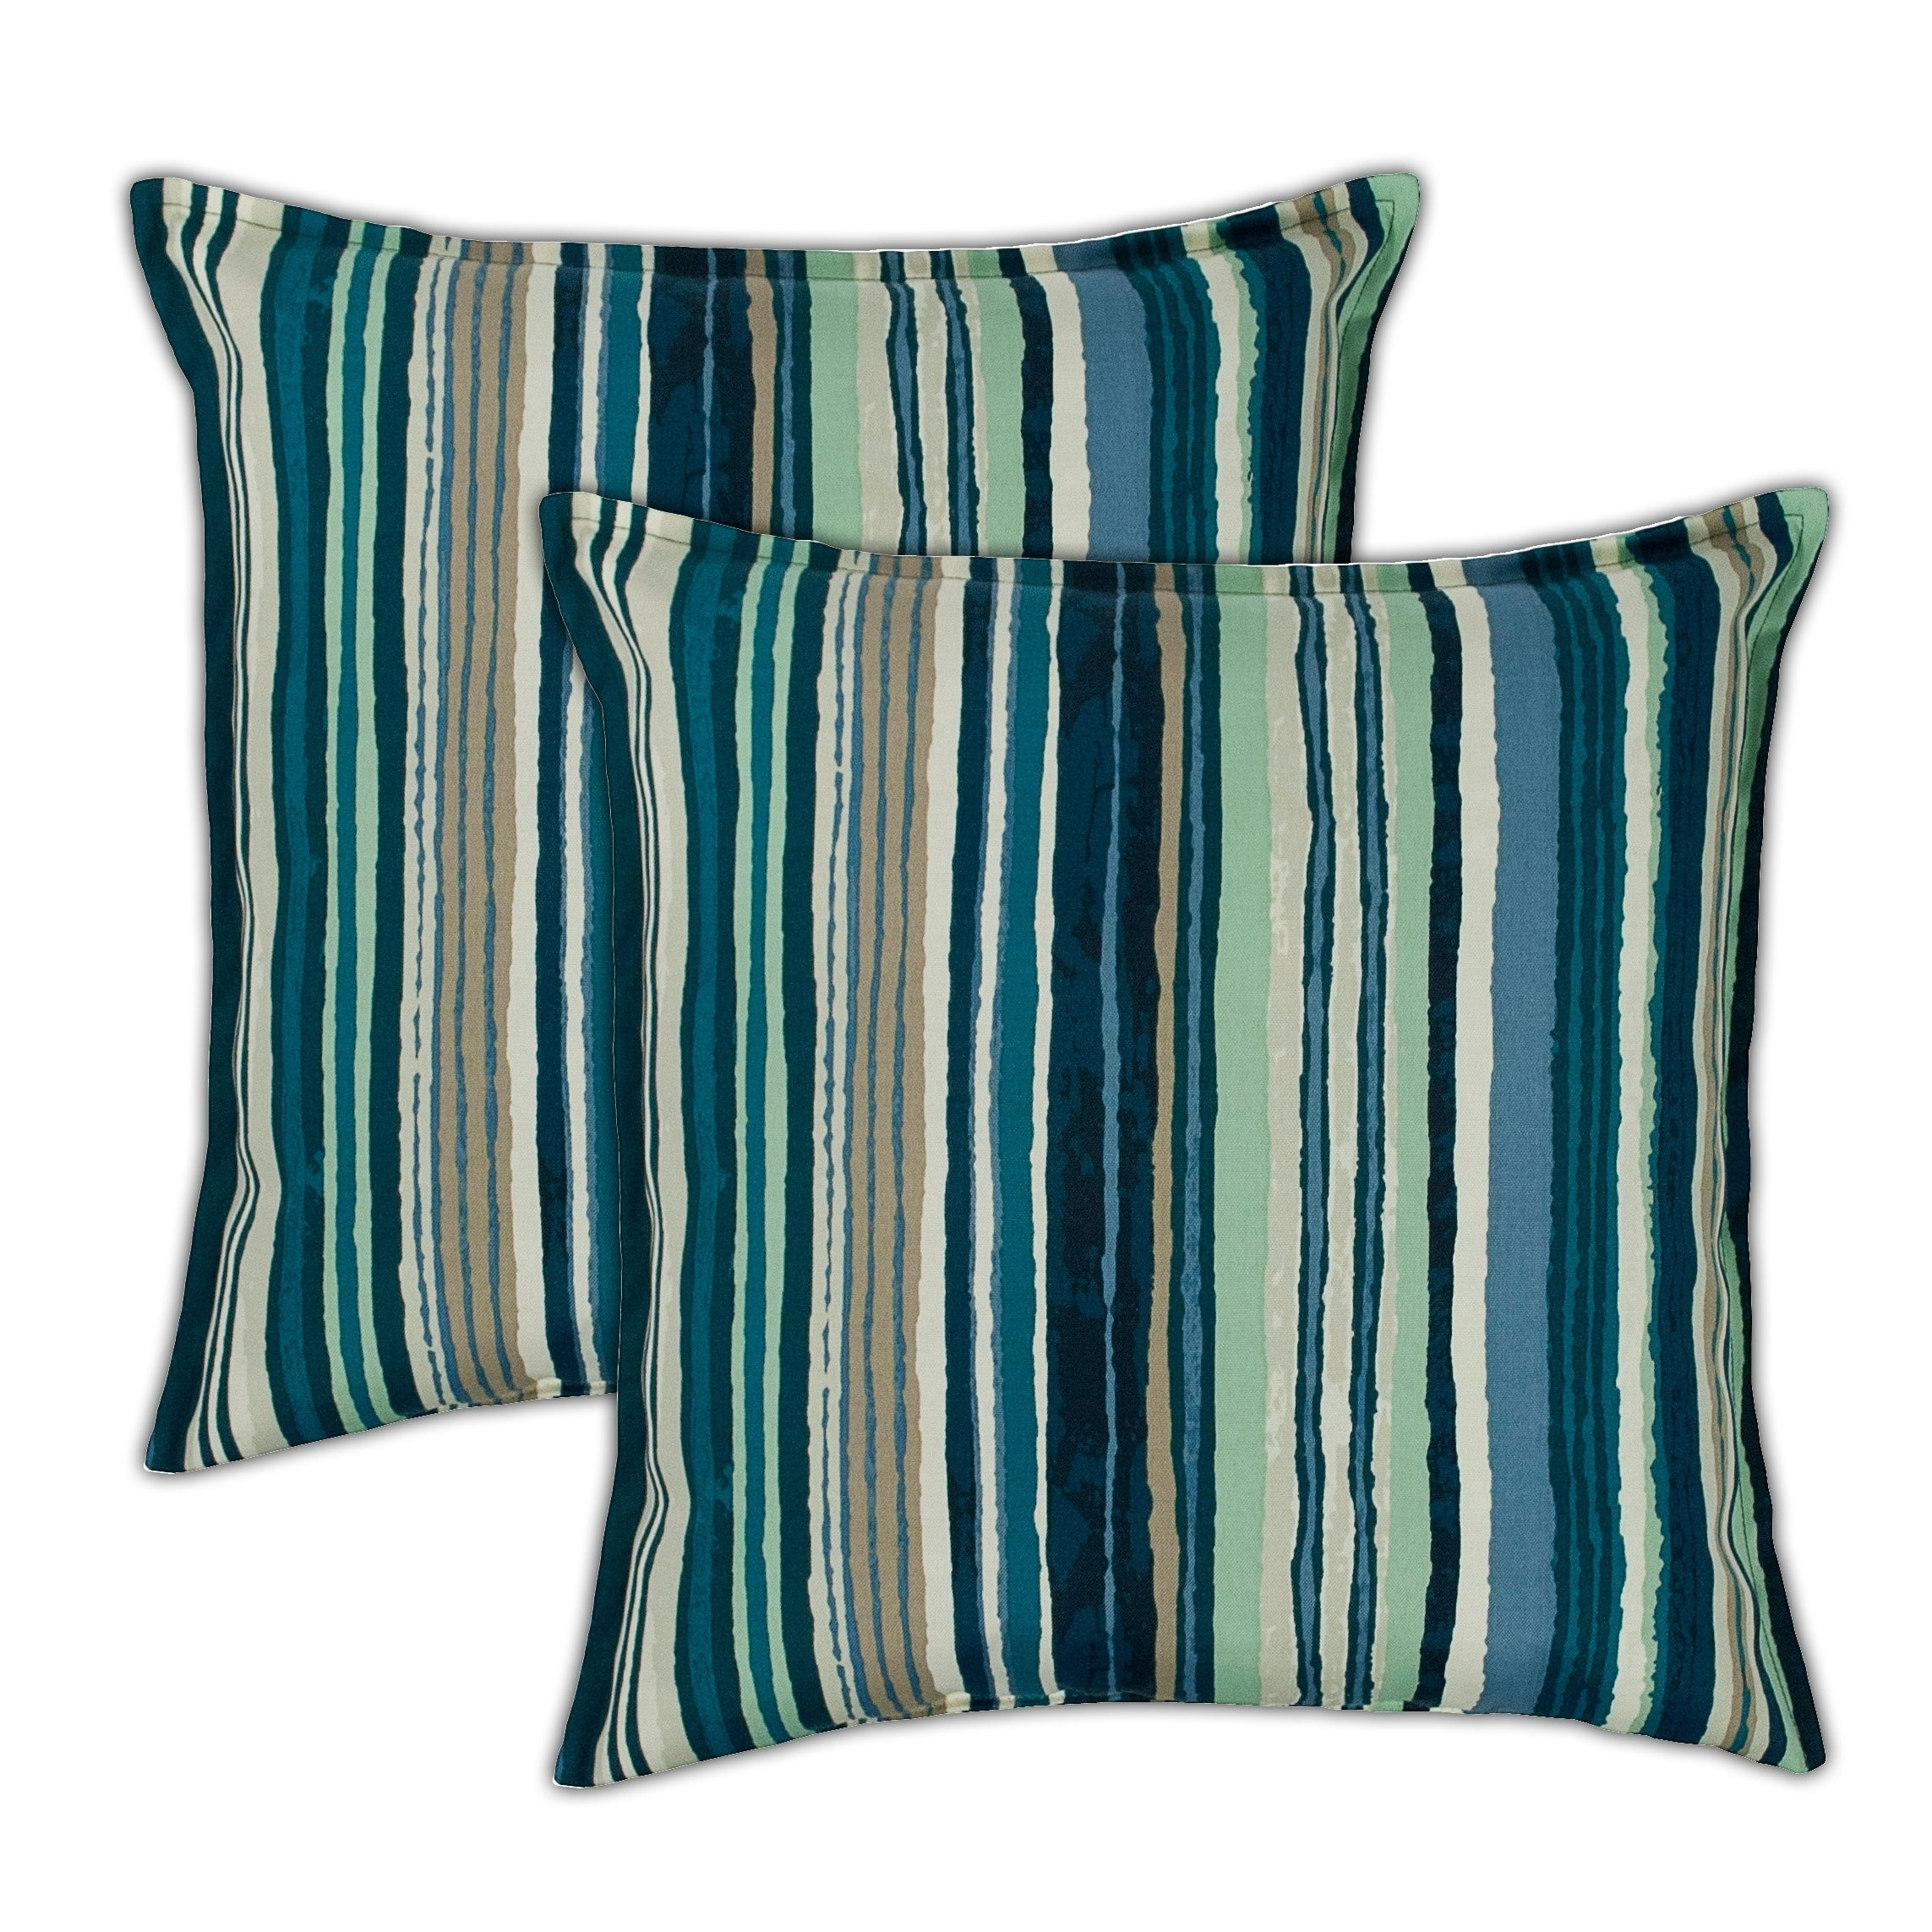 Shop Sherry Kline Lakeview 20 Inch Outdoor Pillows Set Of 2 20 X